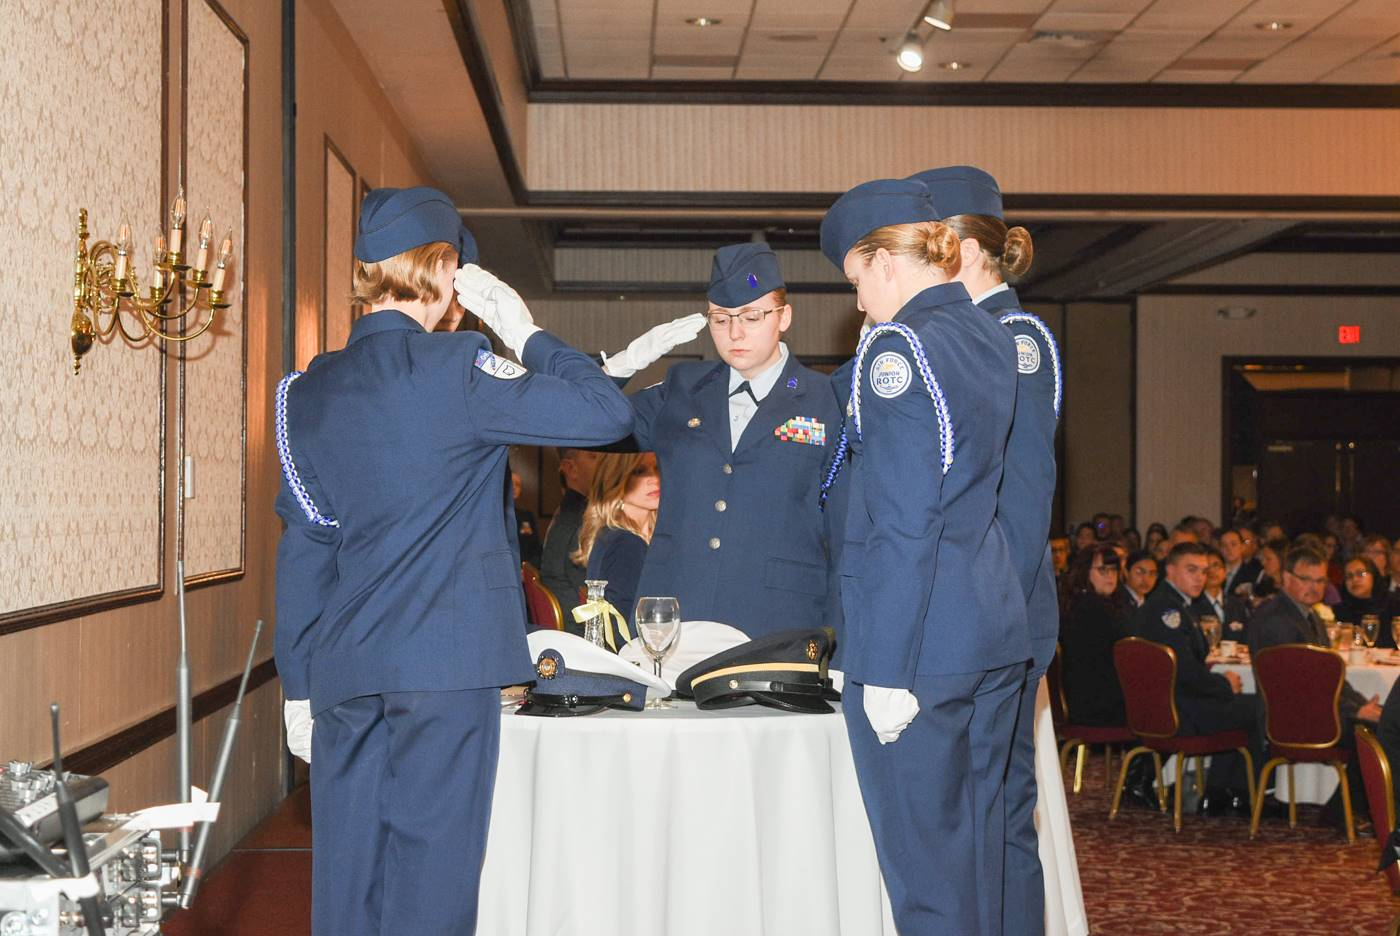 Dining-Out Ceremony